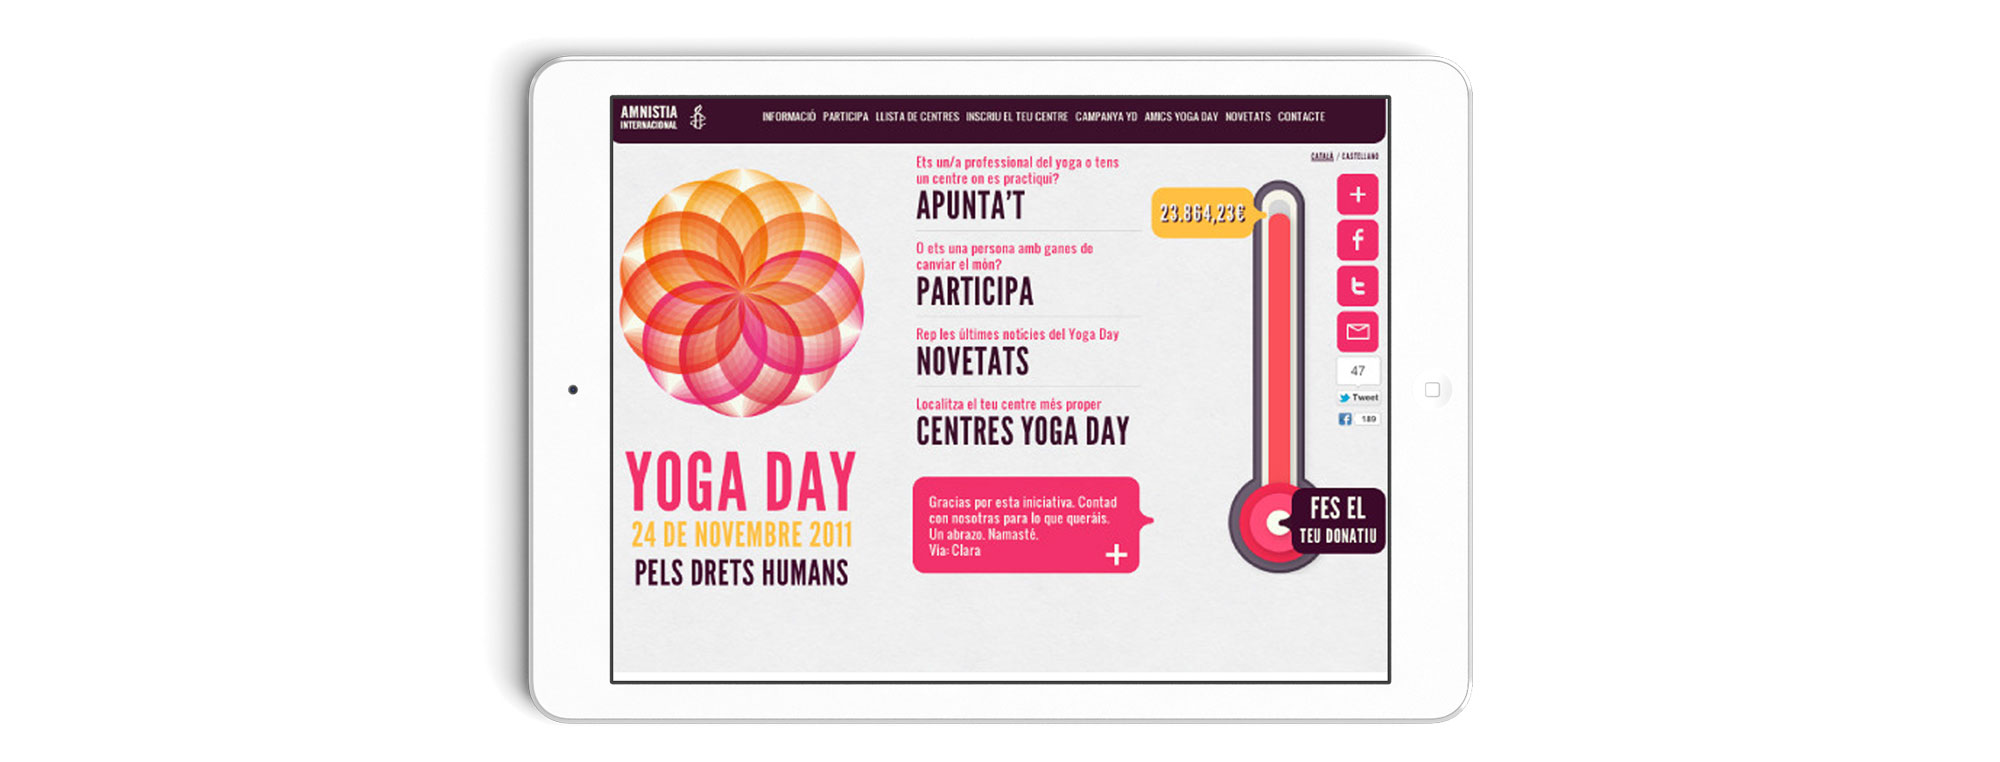 Amnistia Internacional Yoga Day 2 WEB - AMNISTIA INTERNACIONAL // YOGA DAY